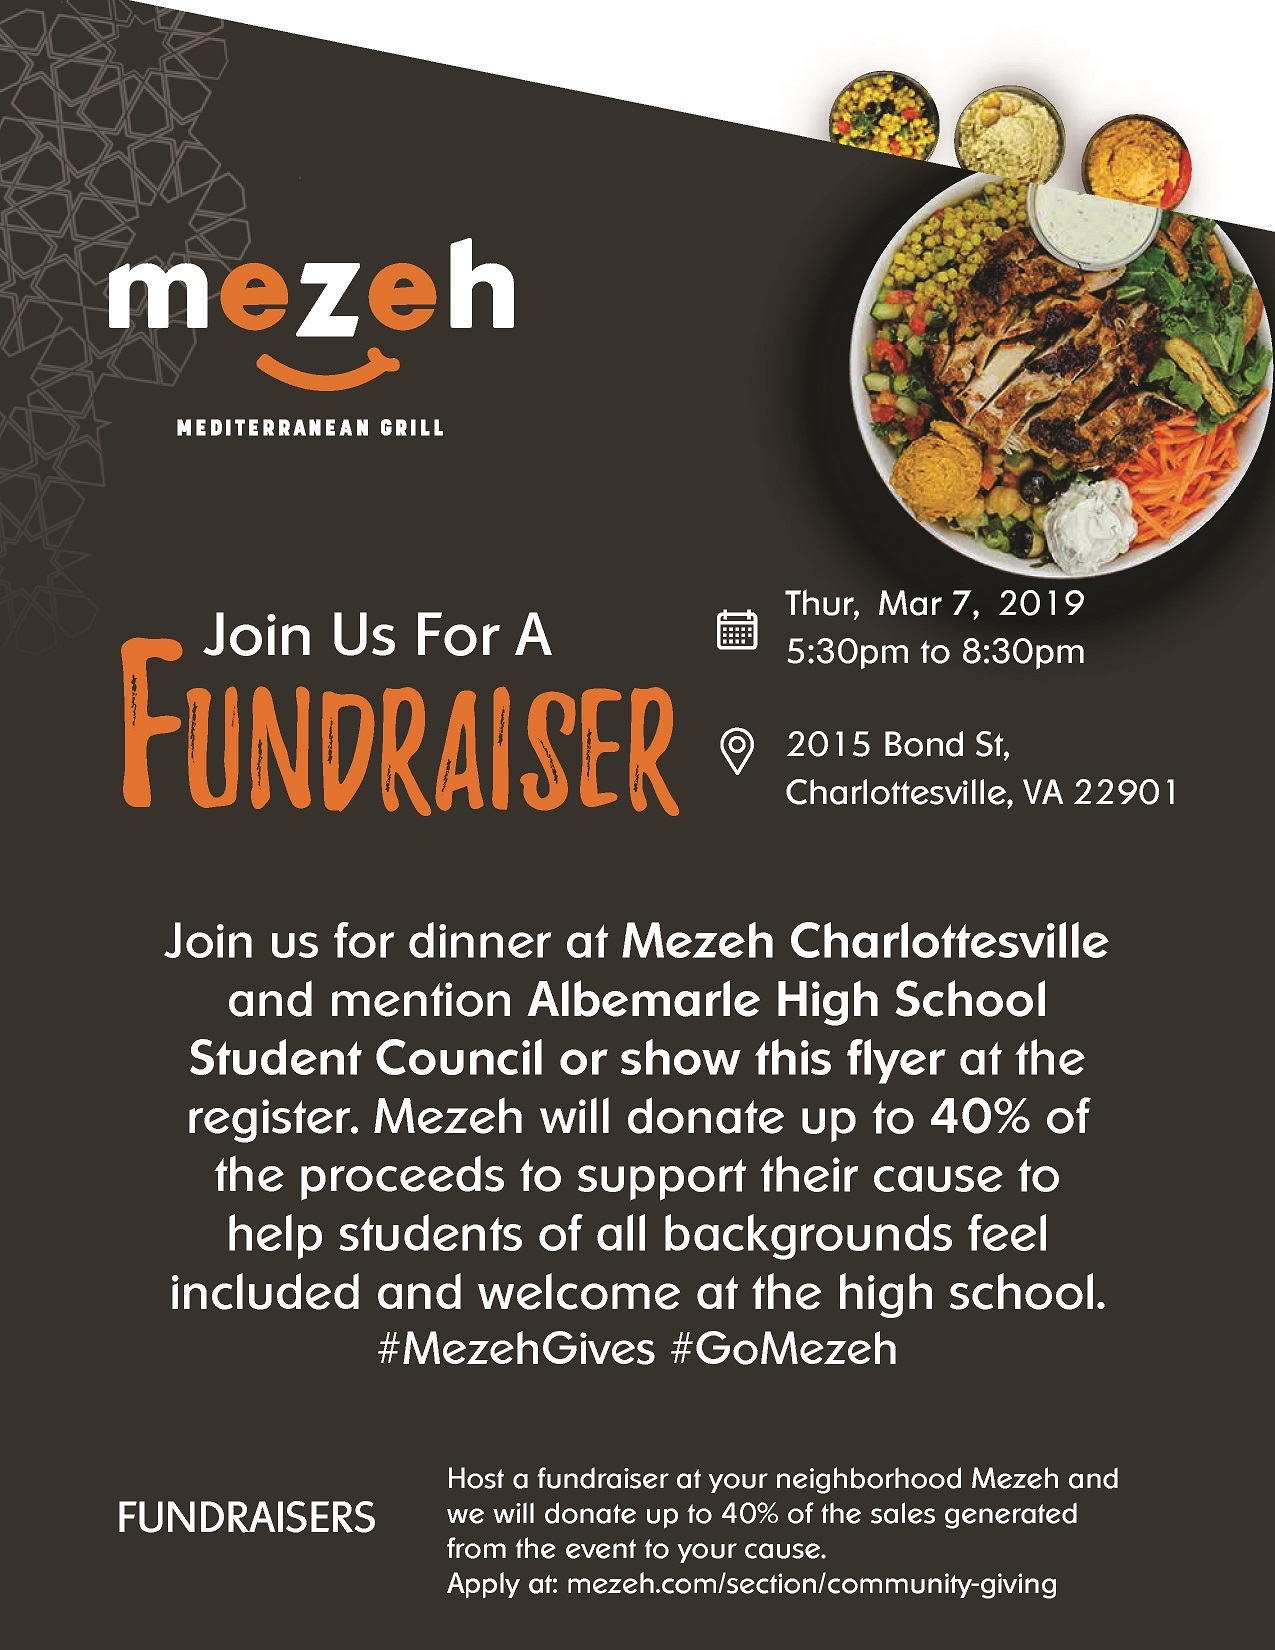 albemarle high school student council fundraiser